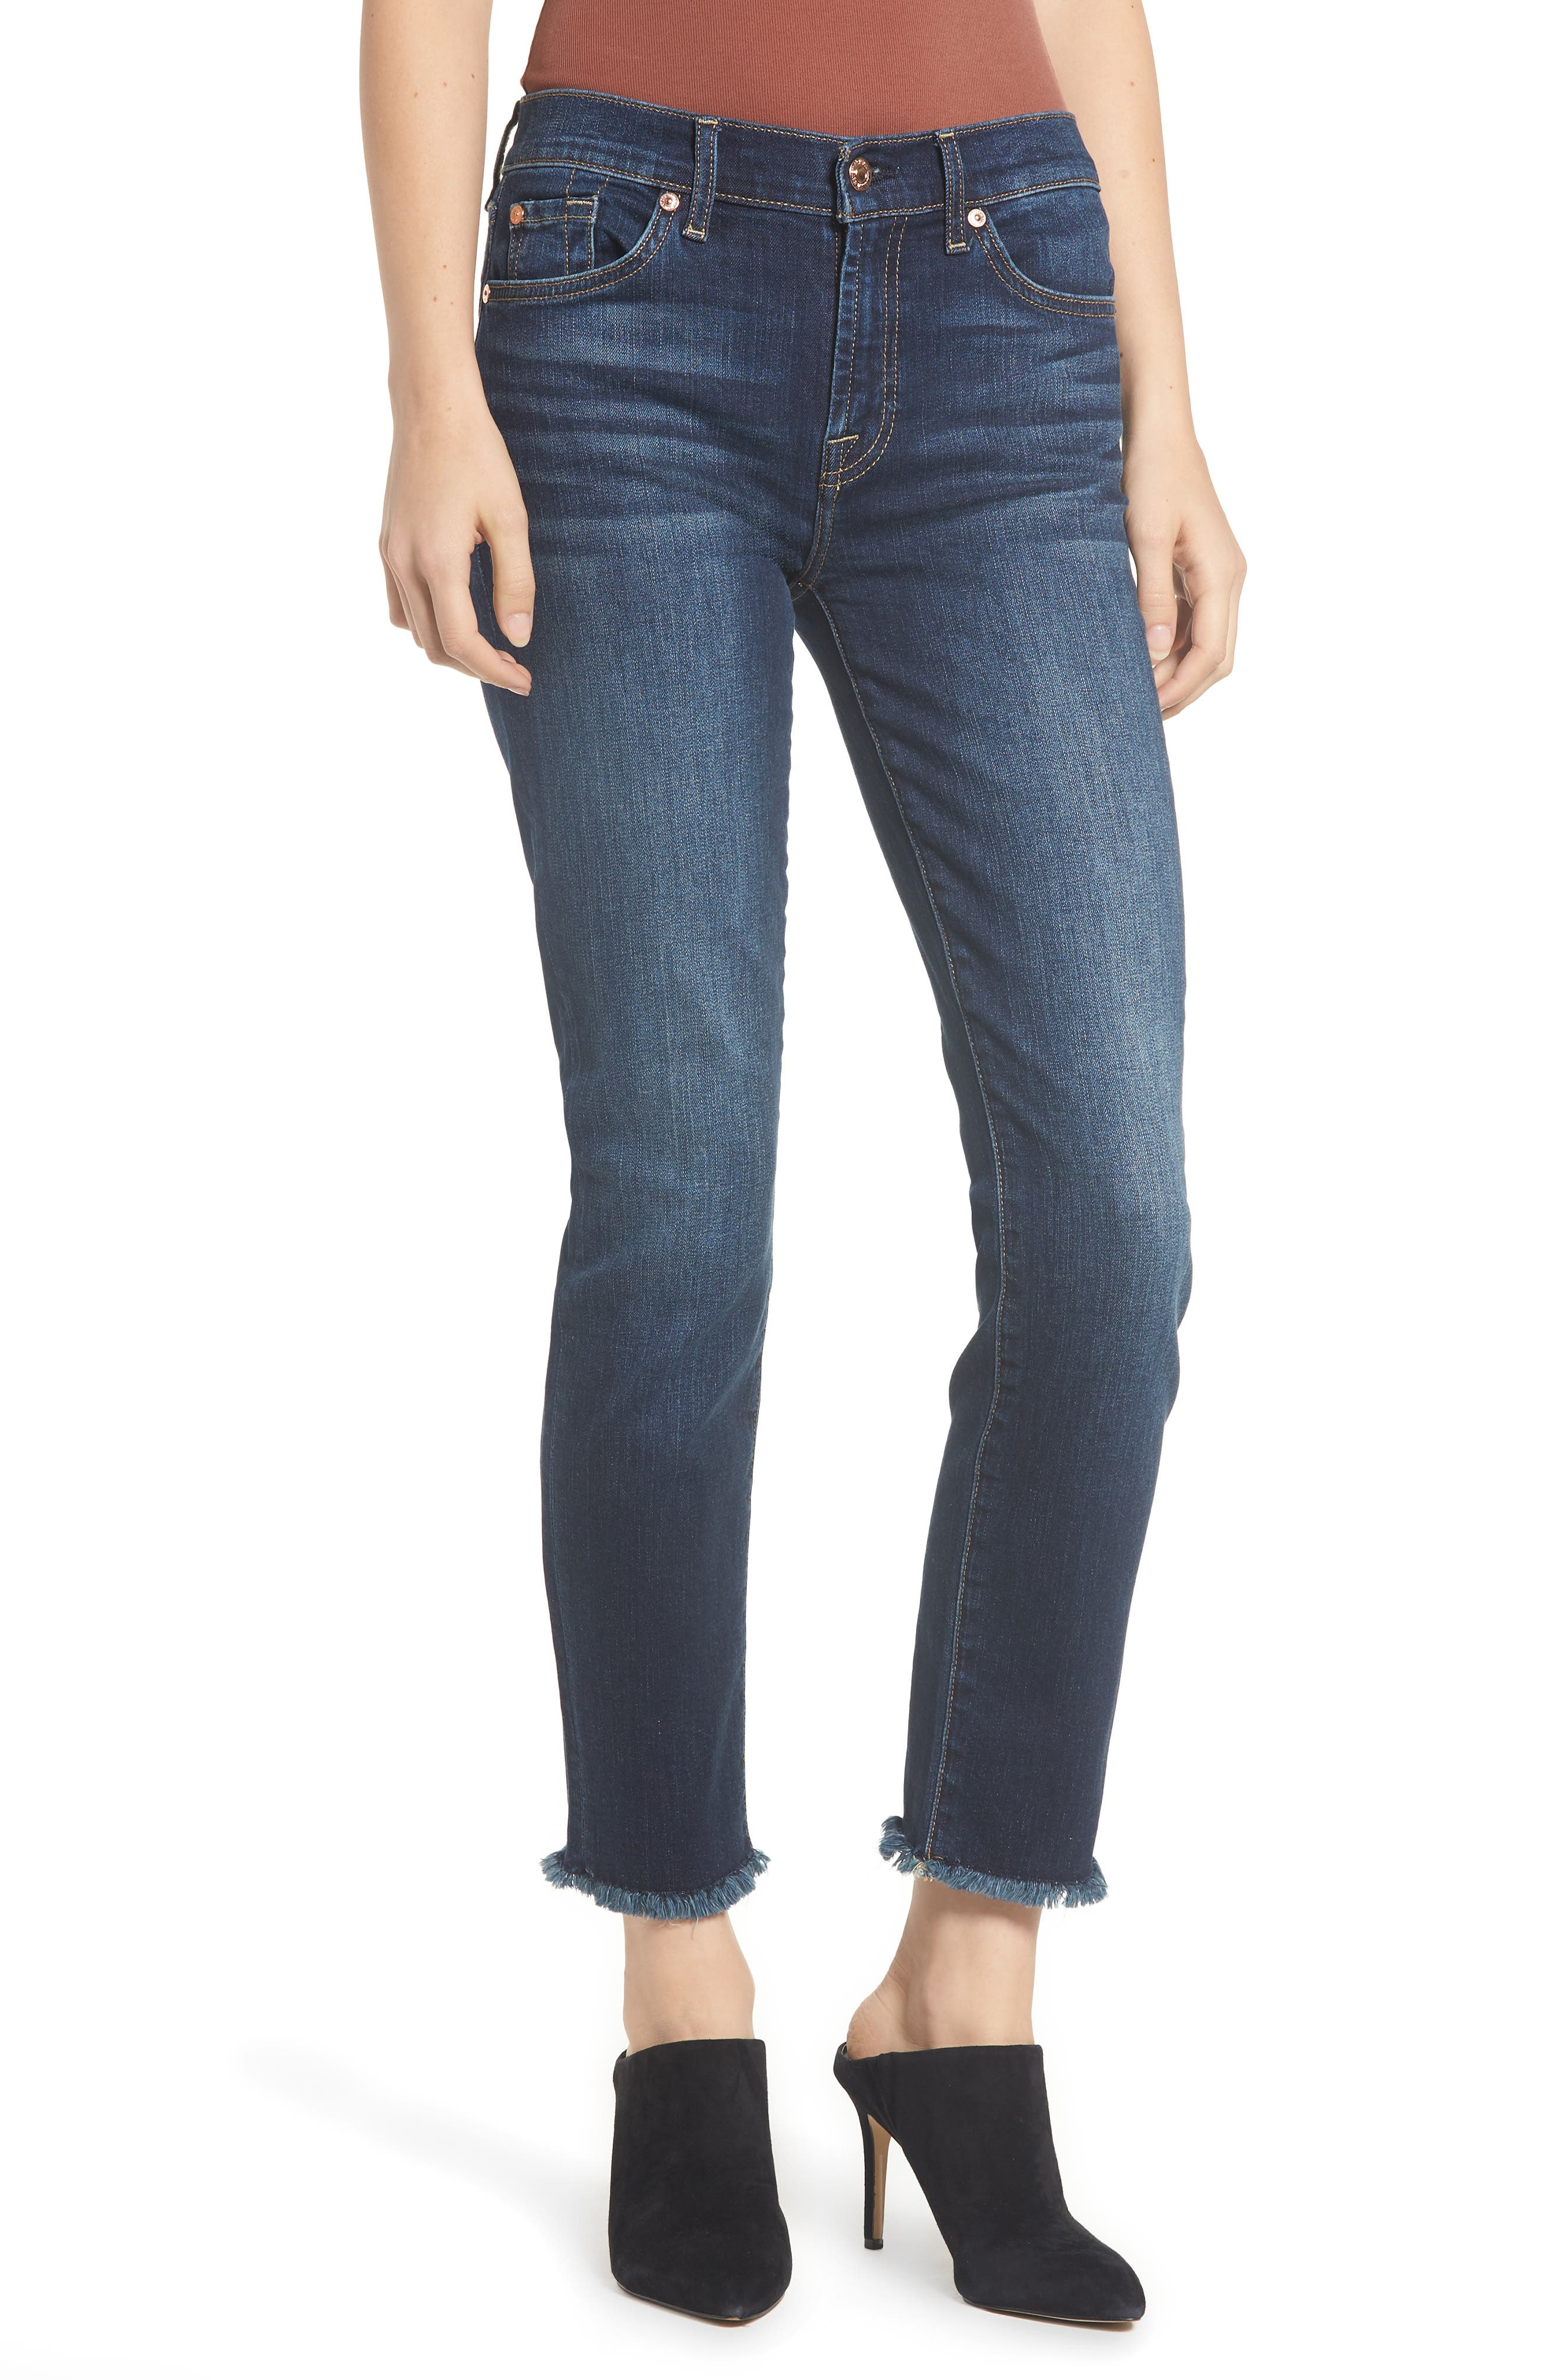 b(air) Roxanne Frayed Ankle Slim Jeans,                             Main thumbnail 1, color,                             AUTHENTIC FATE